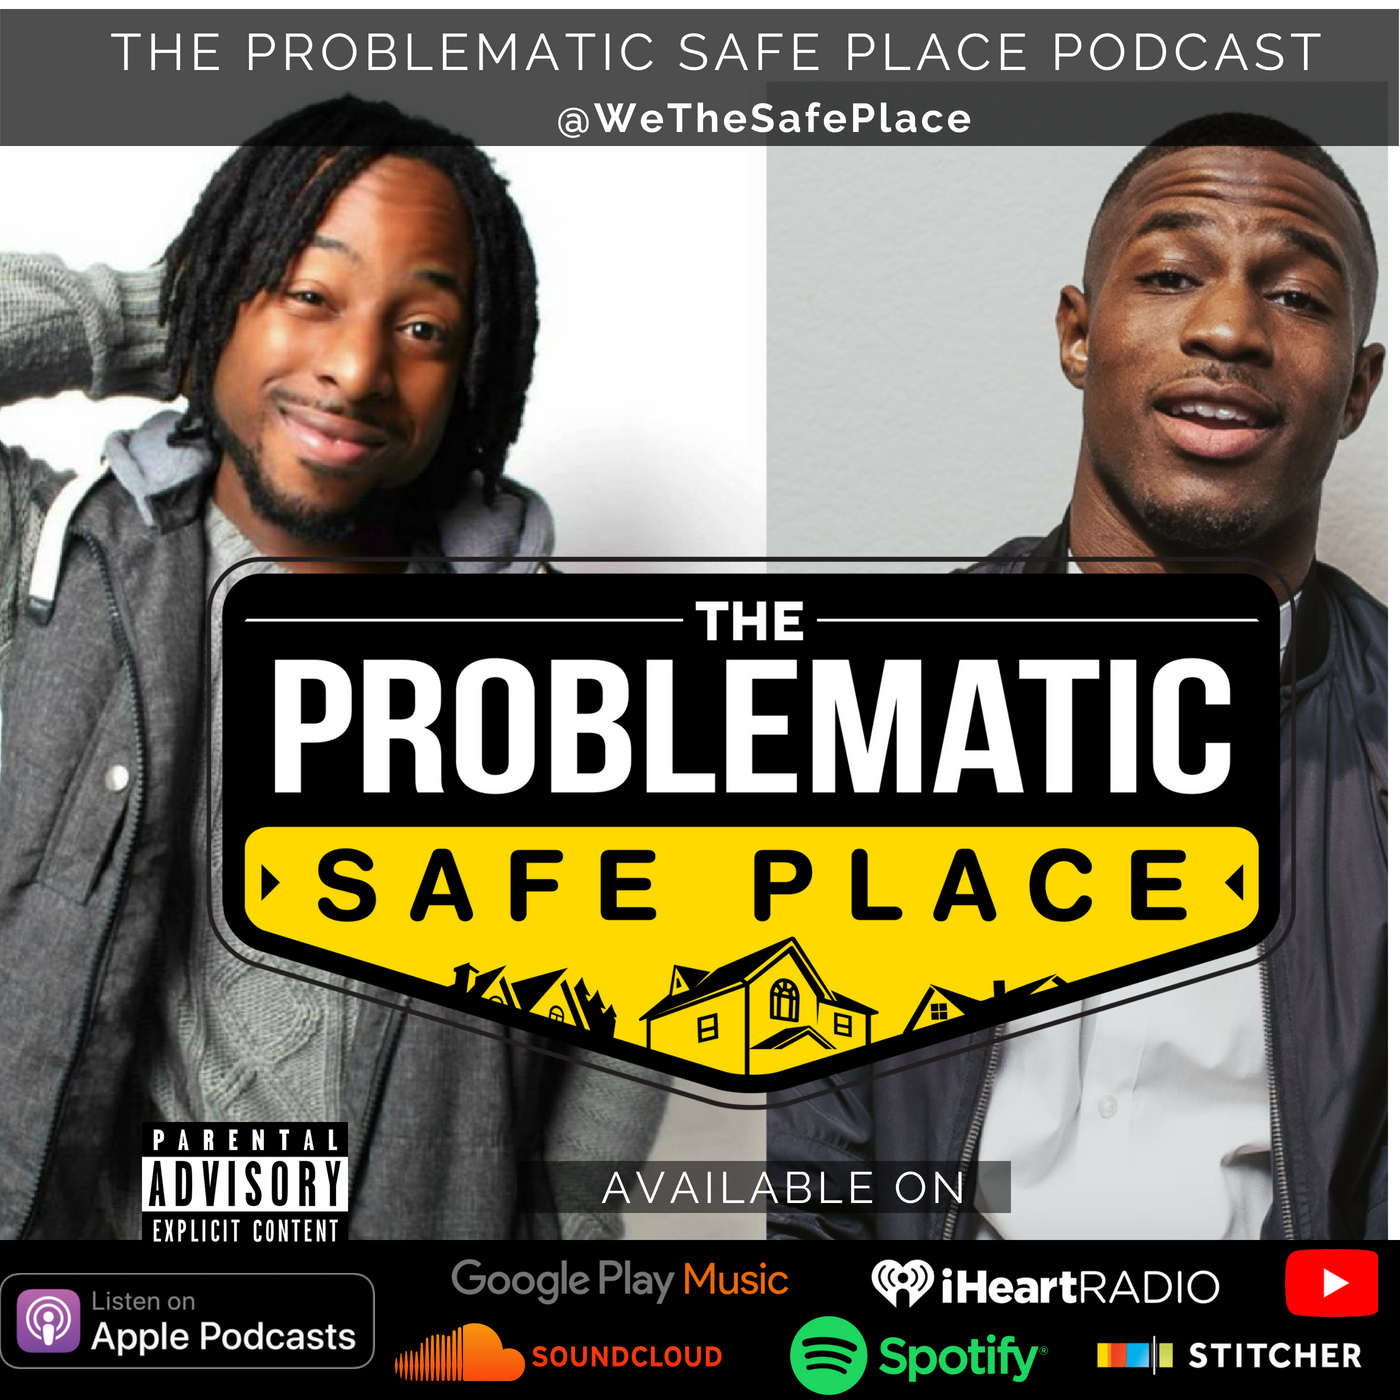 THE PROBLEMATIC SAFE PLACE PODCAST-3